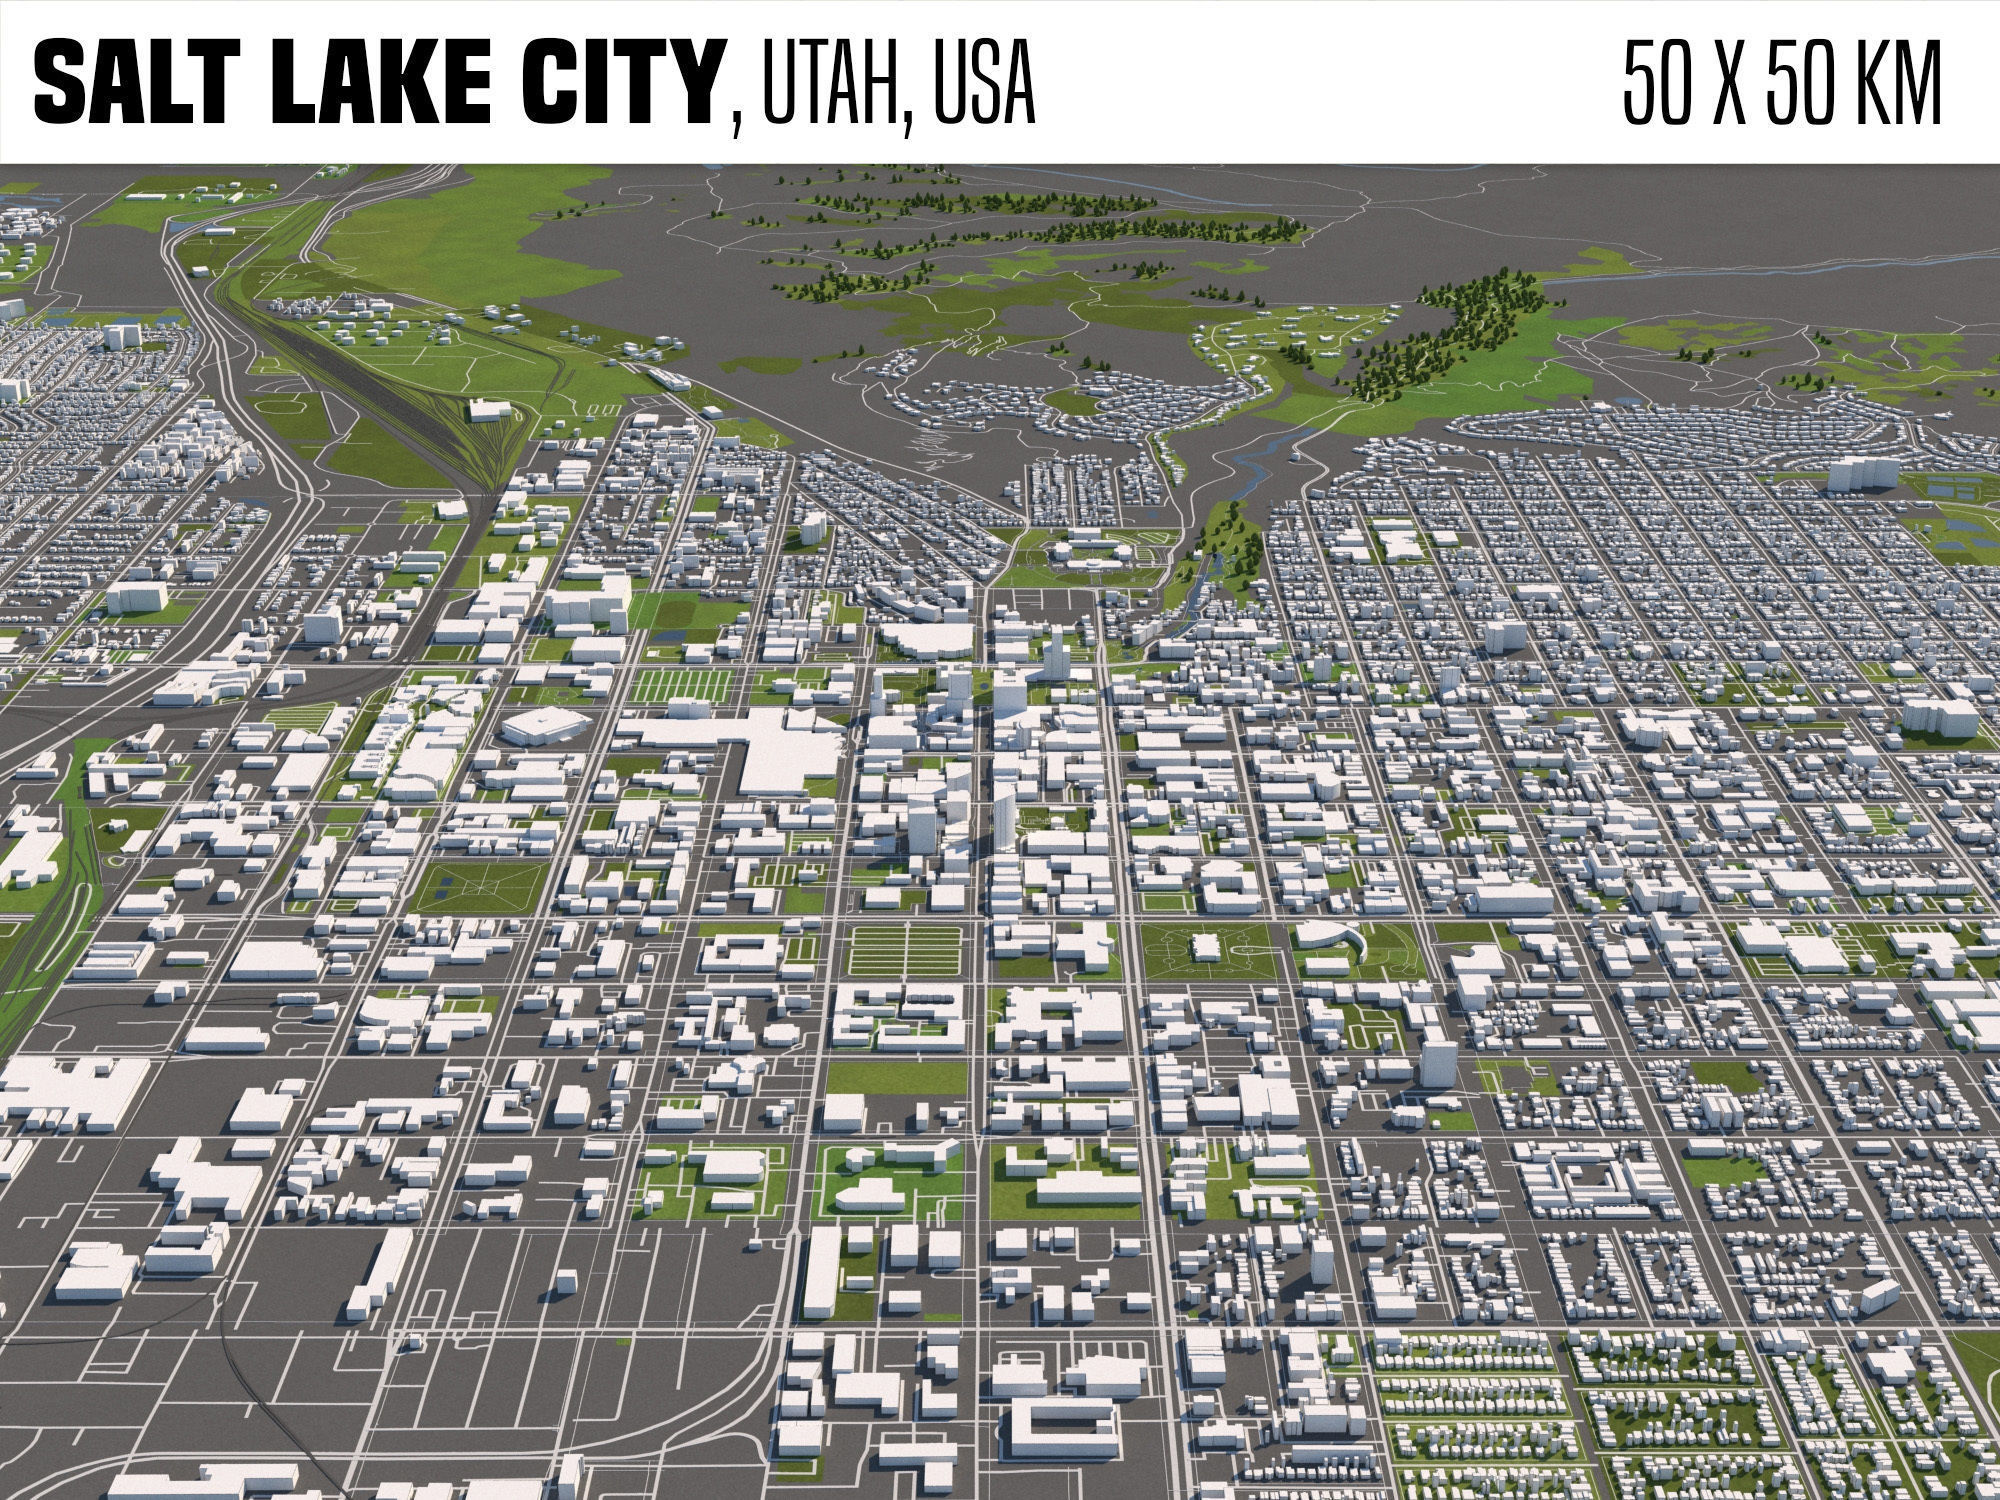 Salt Lake City Utah USA 50x50km